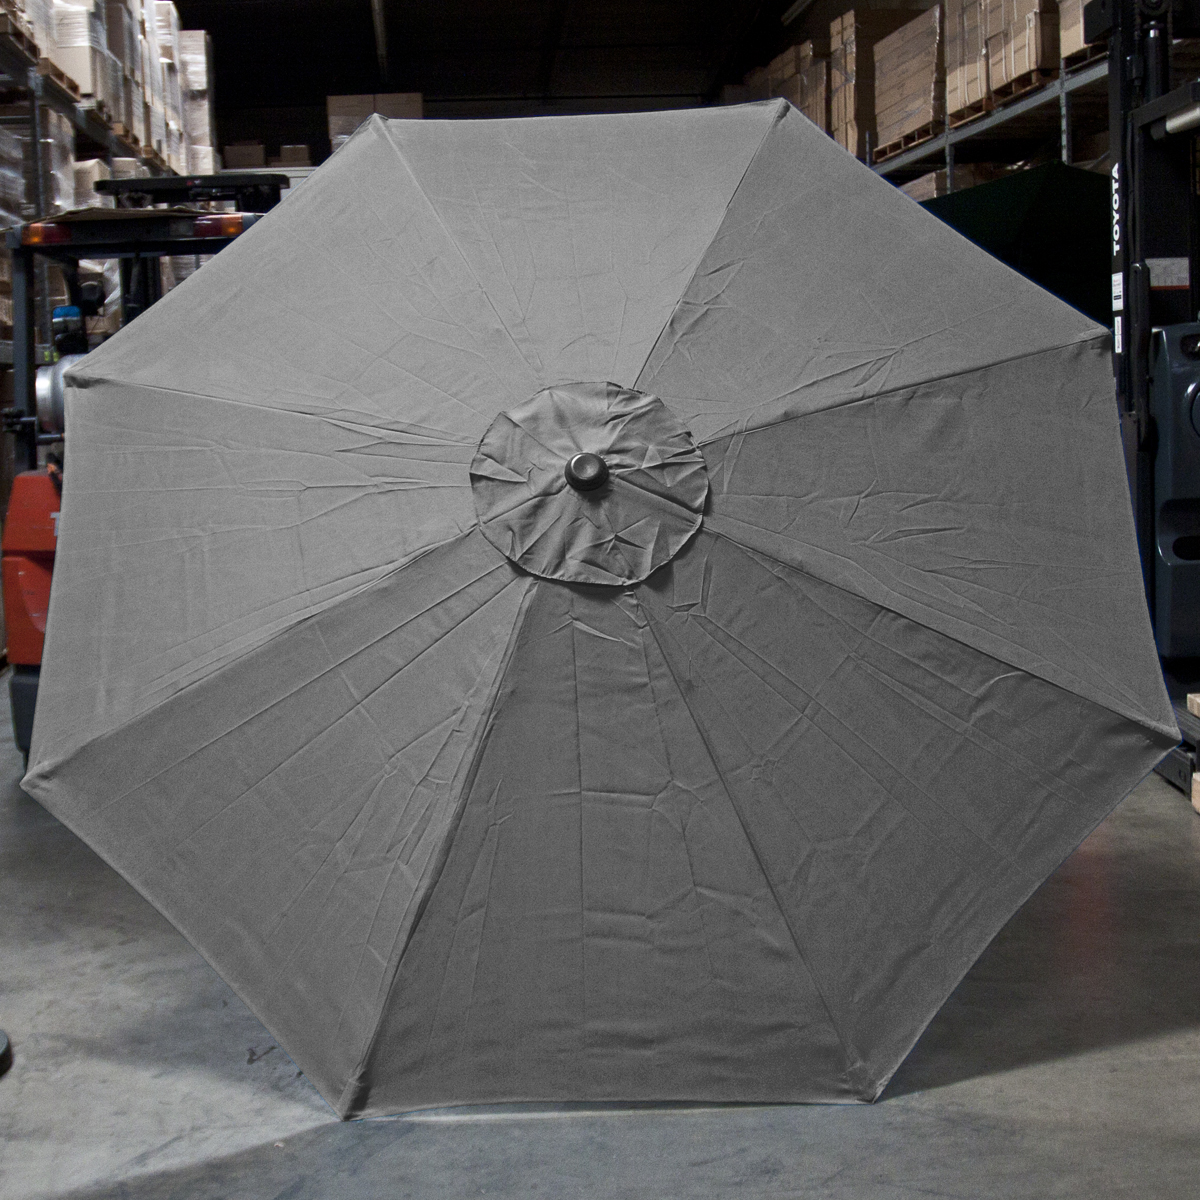 new patio market outdoor 9 ft 8 ribs umbrella cover canopy grey replacement top ebay. Black Bedroom Furniture Sets. Home Design Ideas